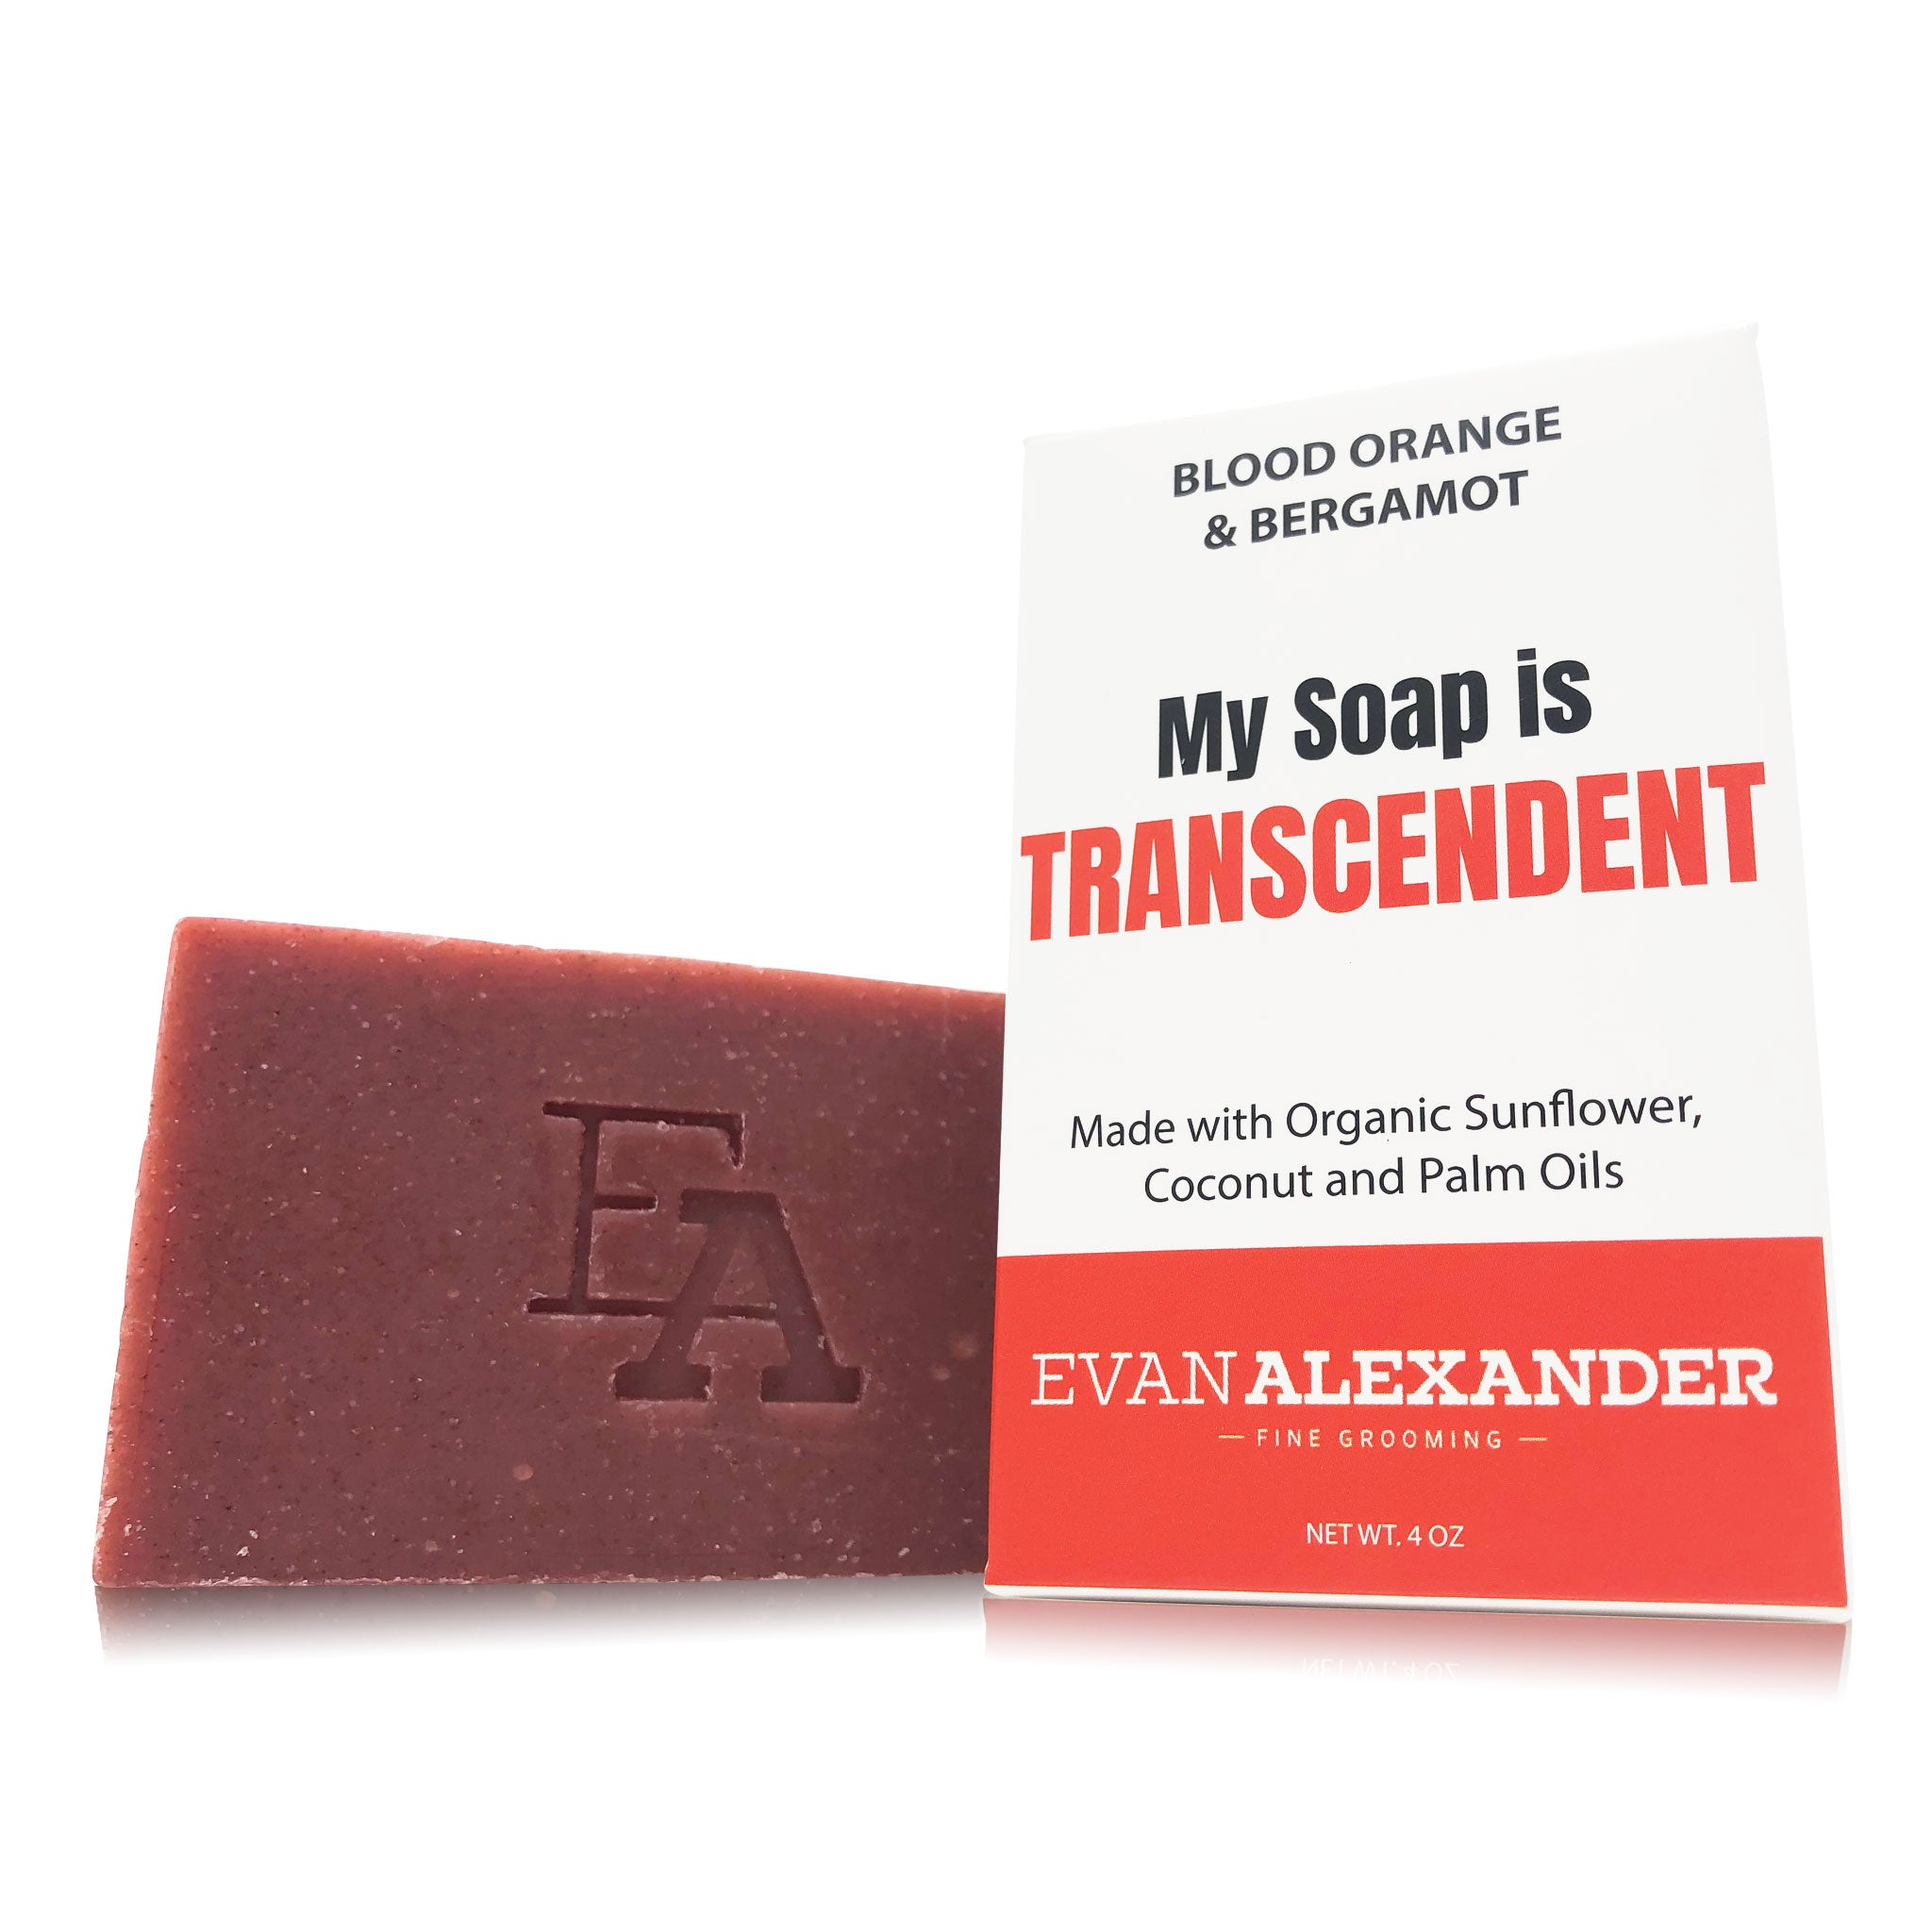 My Soap is Transcendent